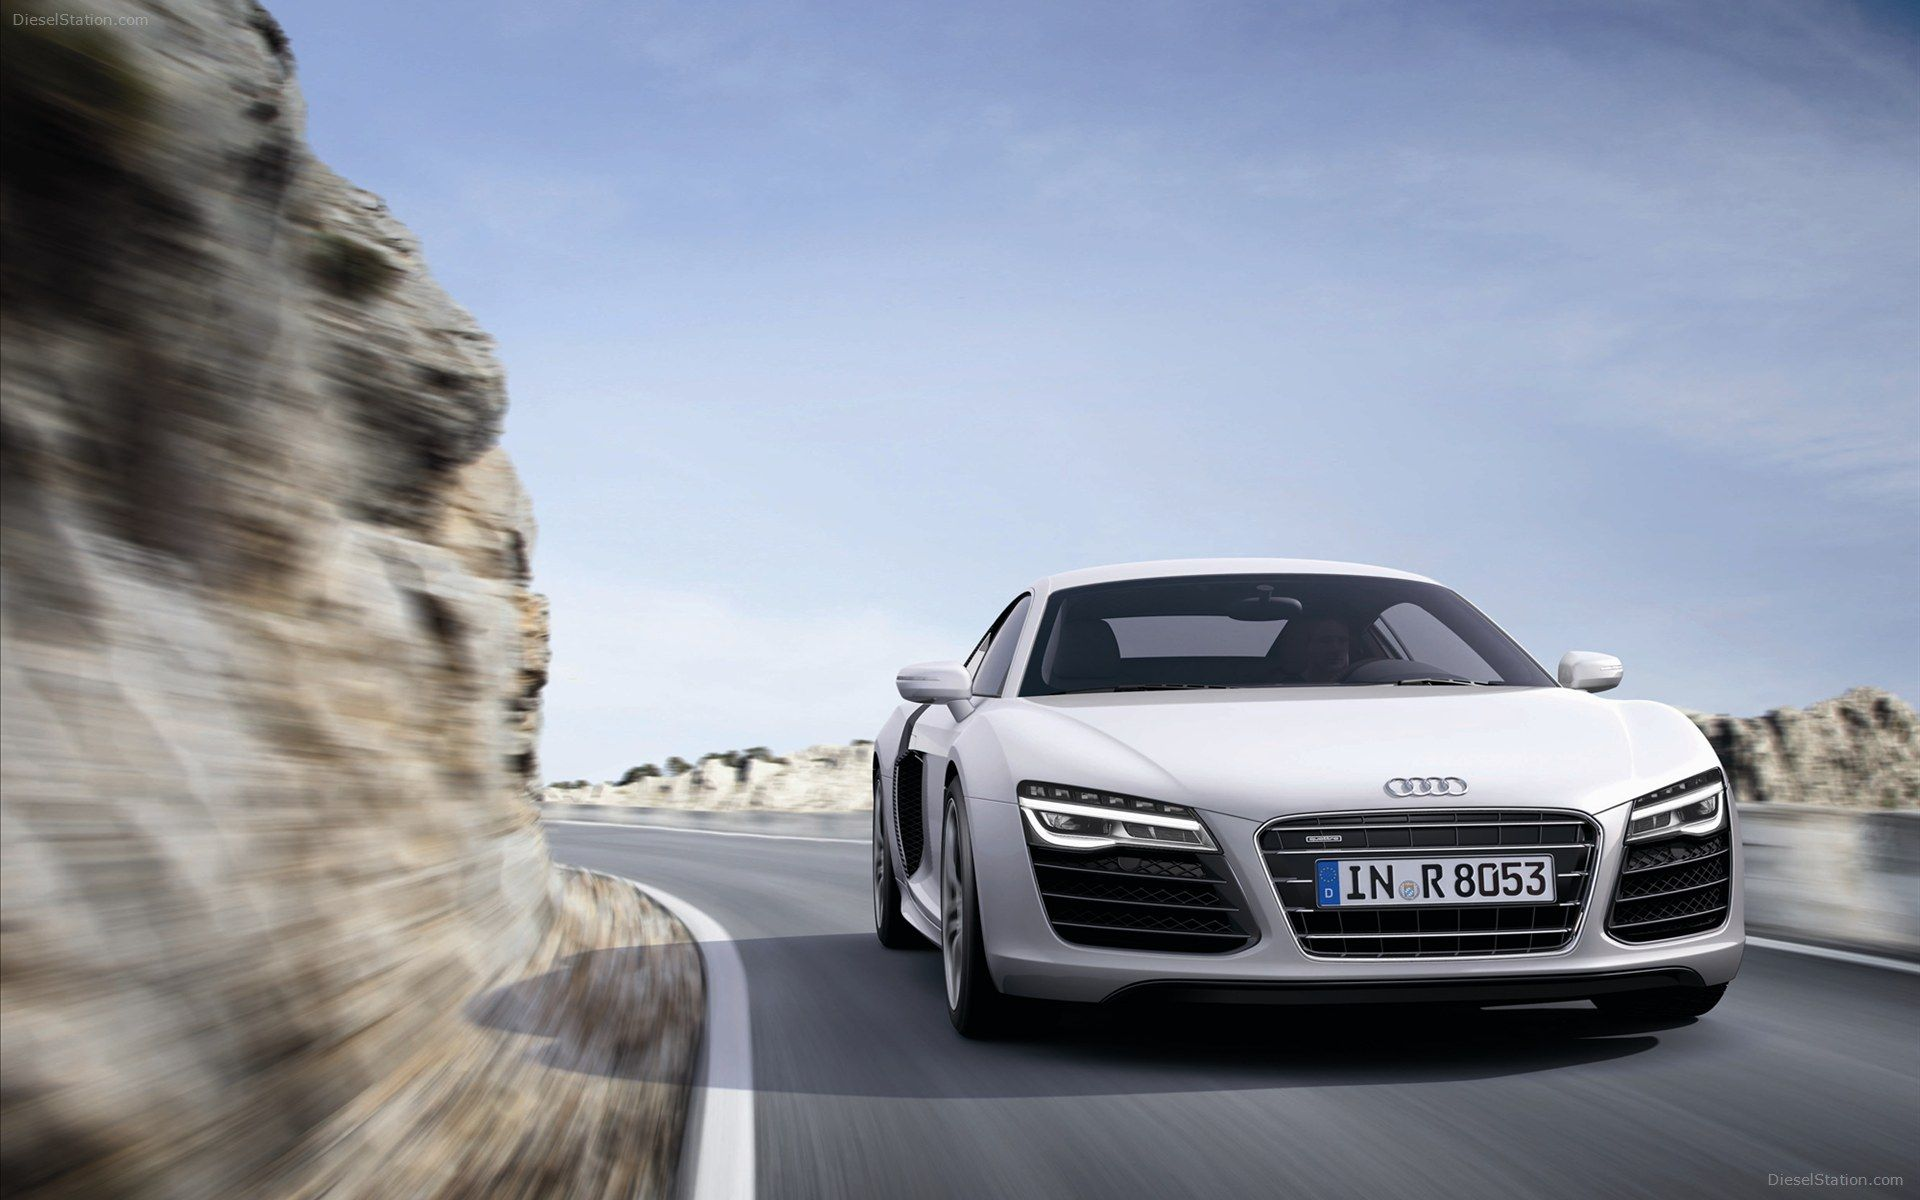 Awesome Audi R8 Wallpaper For Android